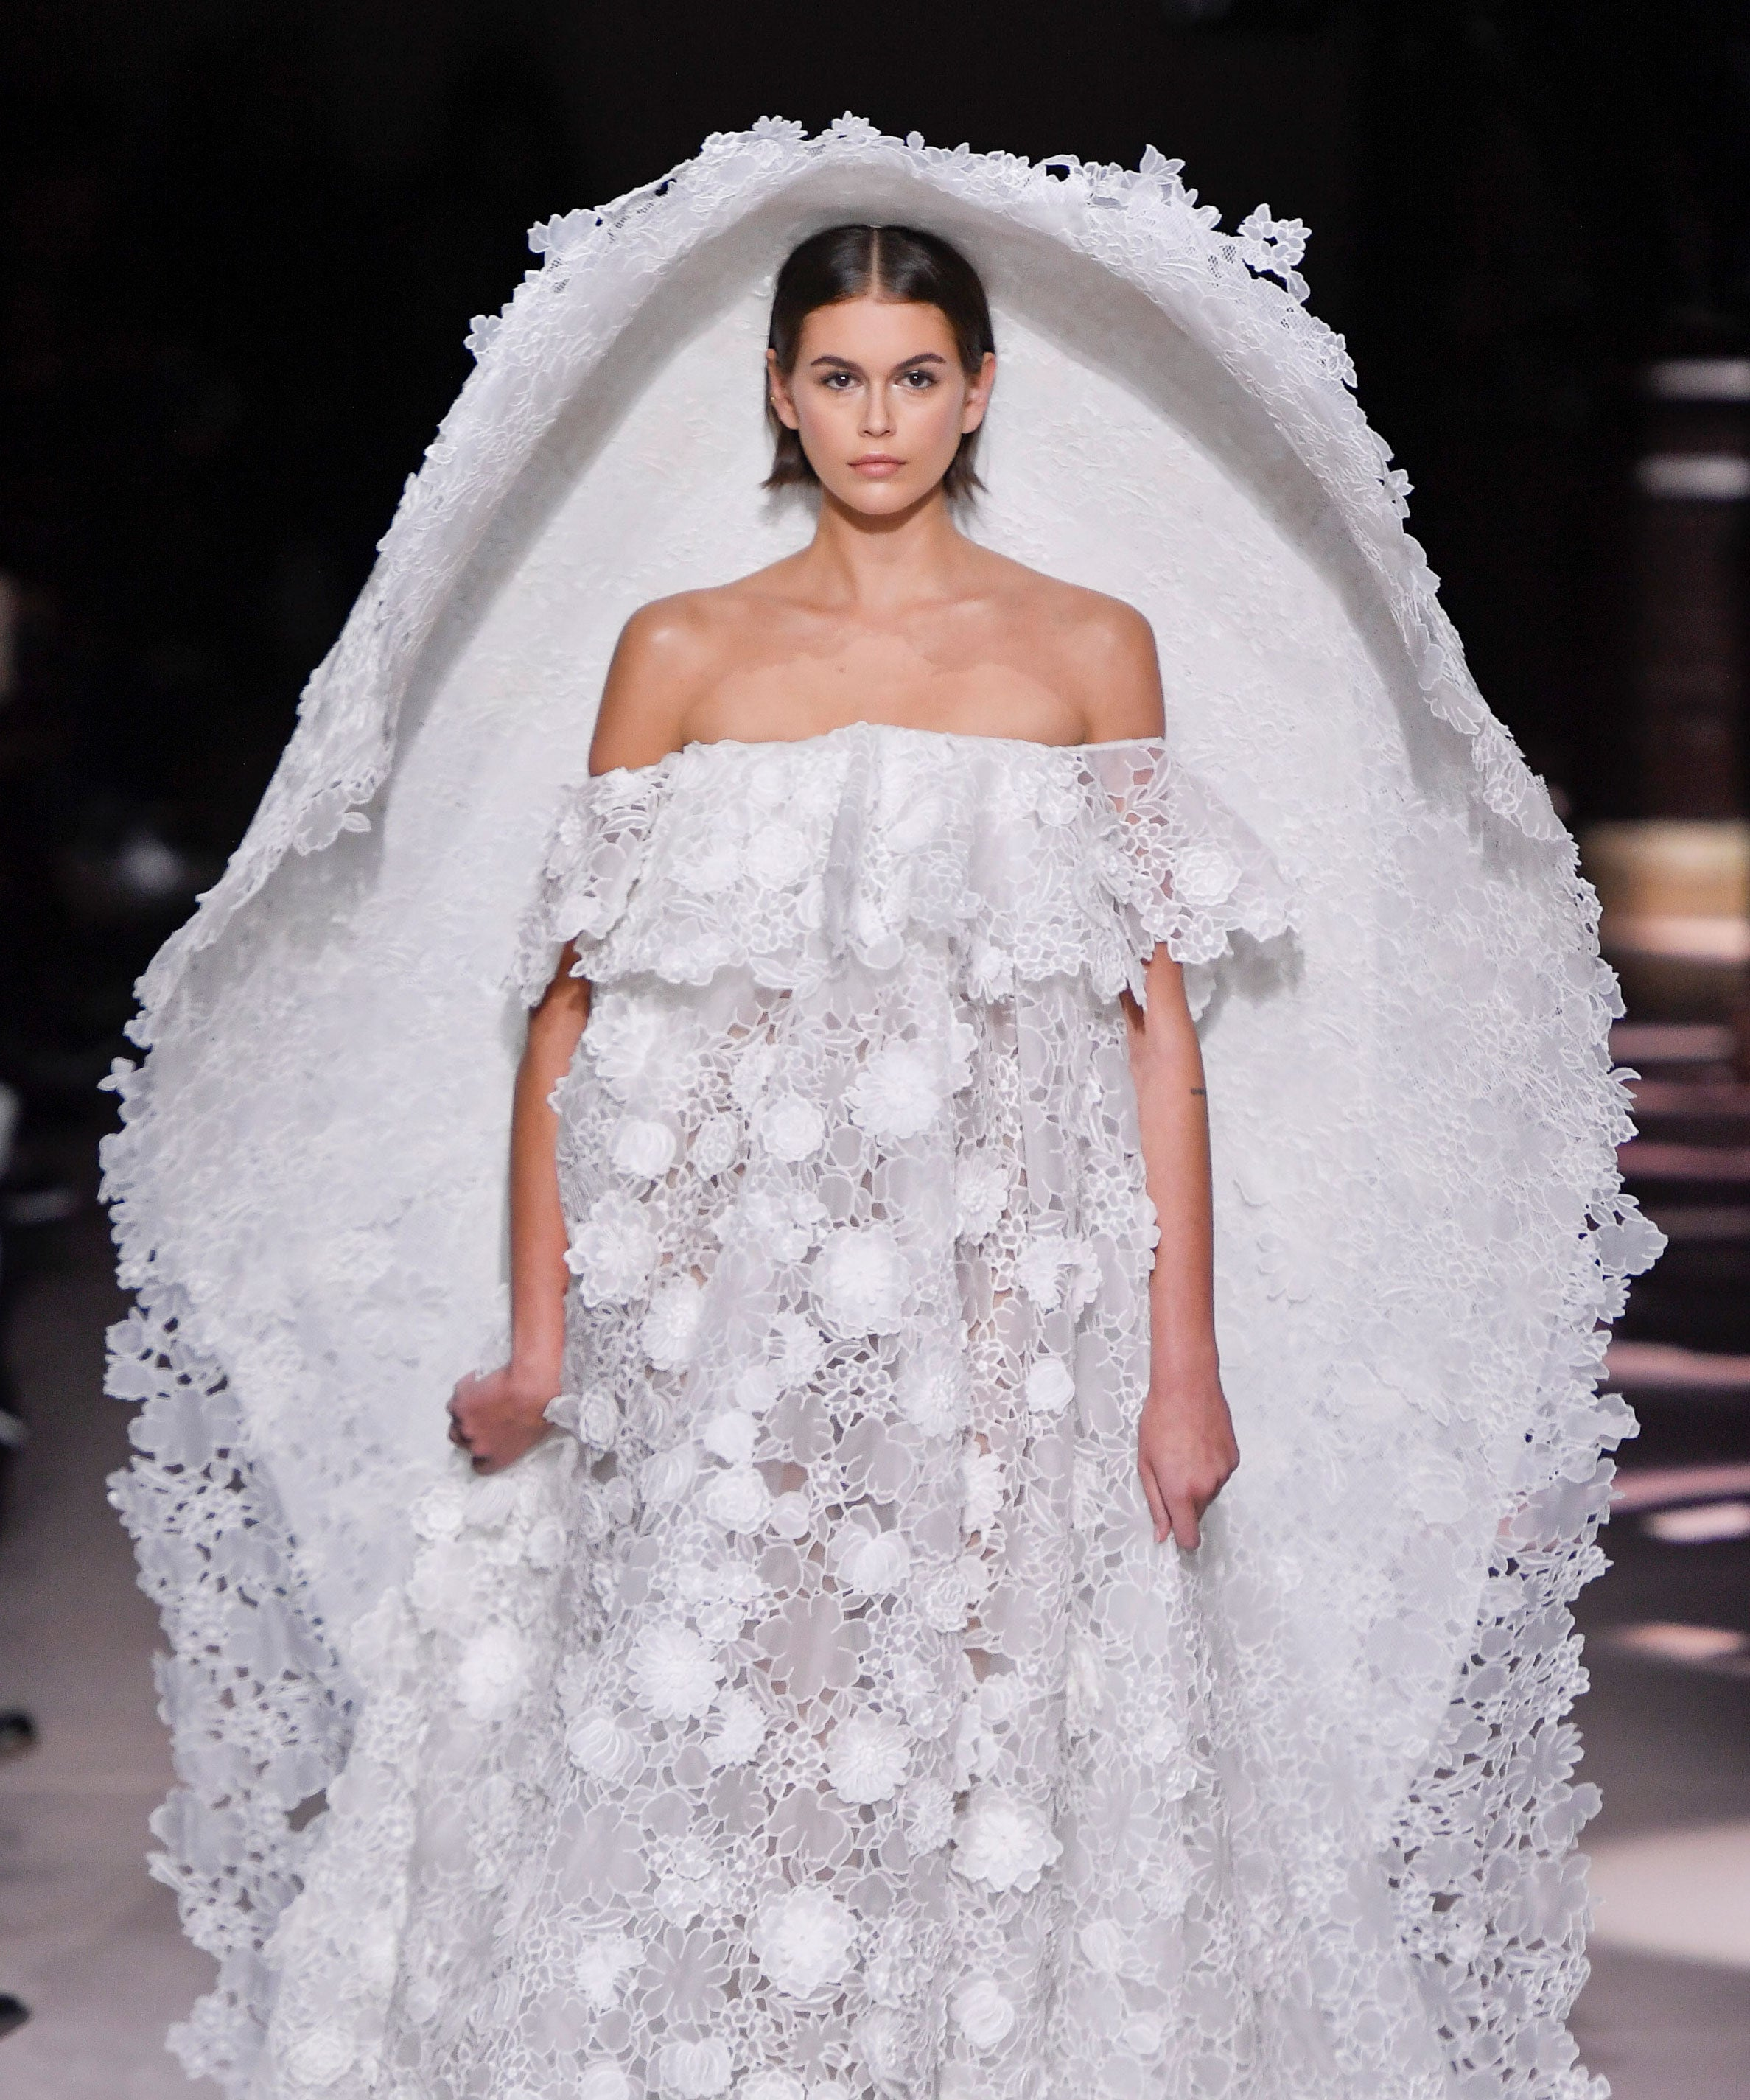 Kaia Gerber's Massive Givenchy Veil Is Destined To Be A Meme